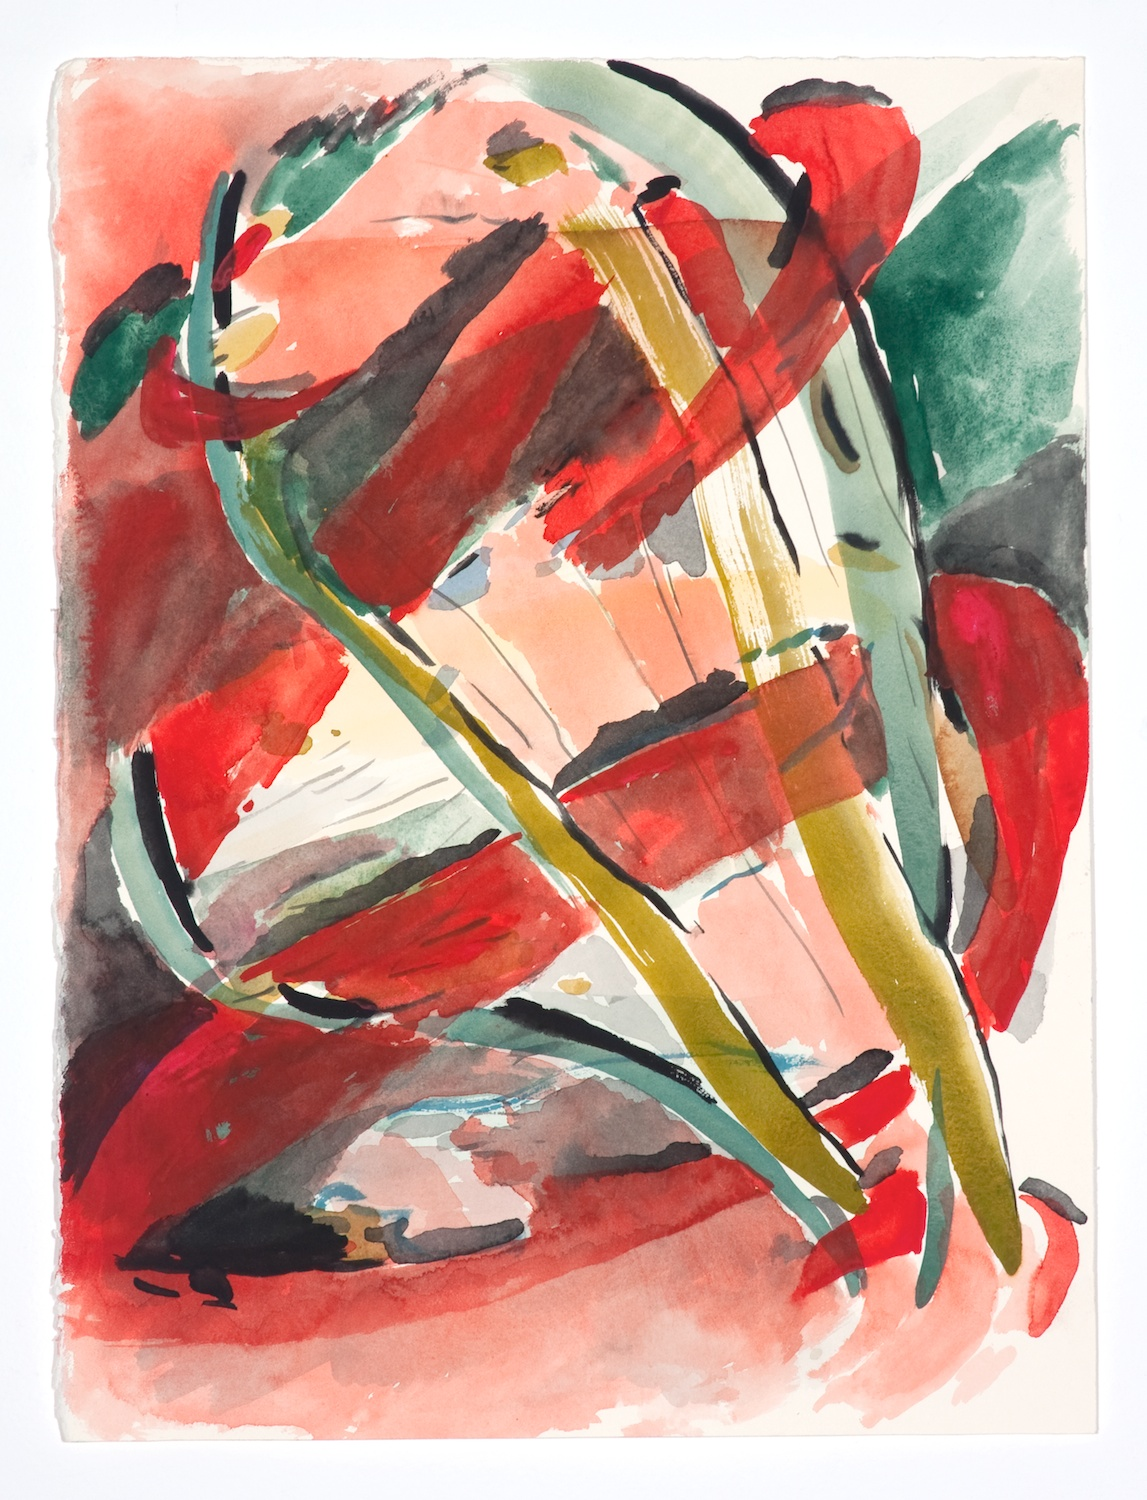 Jon Pestoni  Untitled  2009 Gouache on paper 15h x 11 ⅛w in JP066